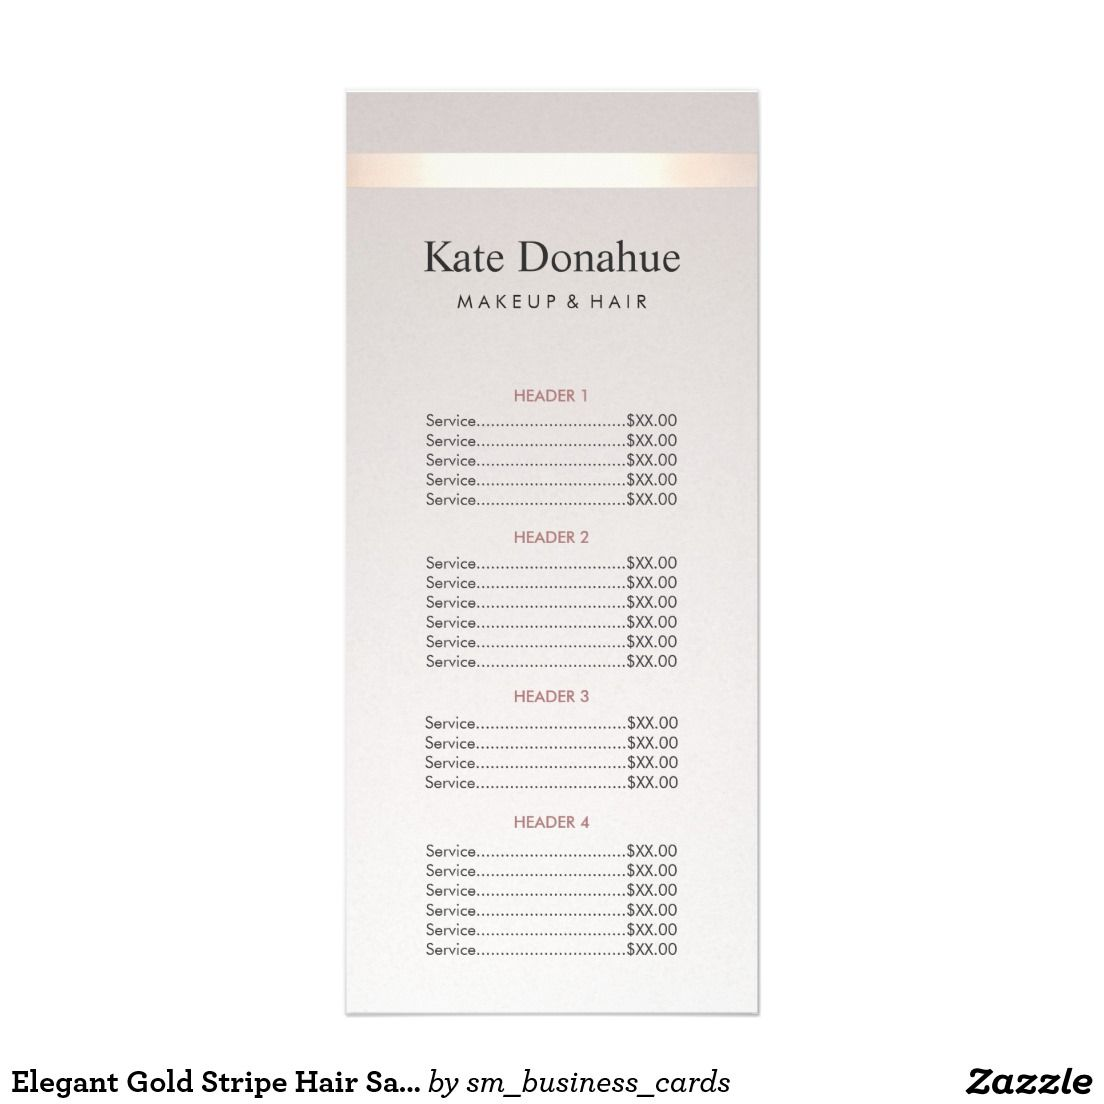 Beauty Salon Prices Elegant Gold Stripe Hair Salon Price List Menu Zazzle